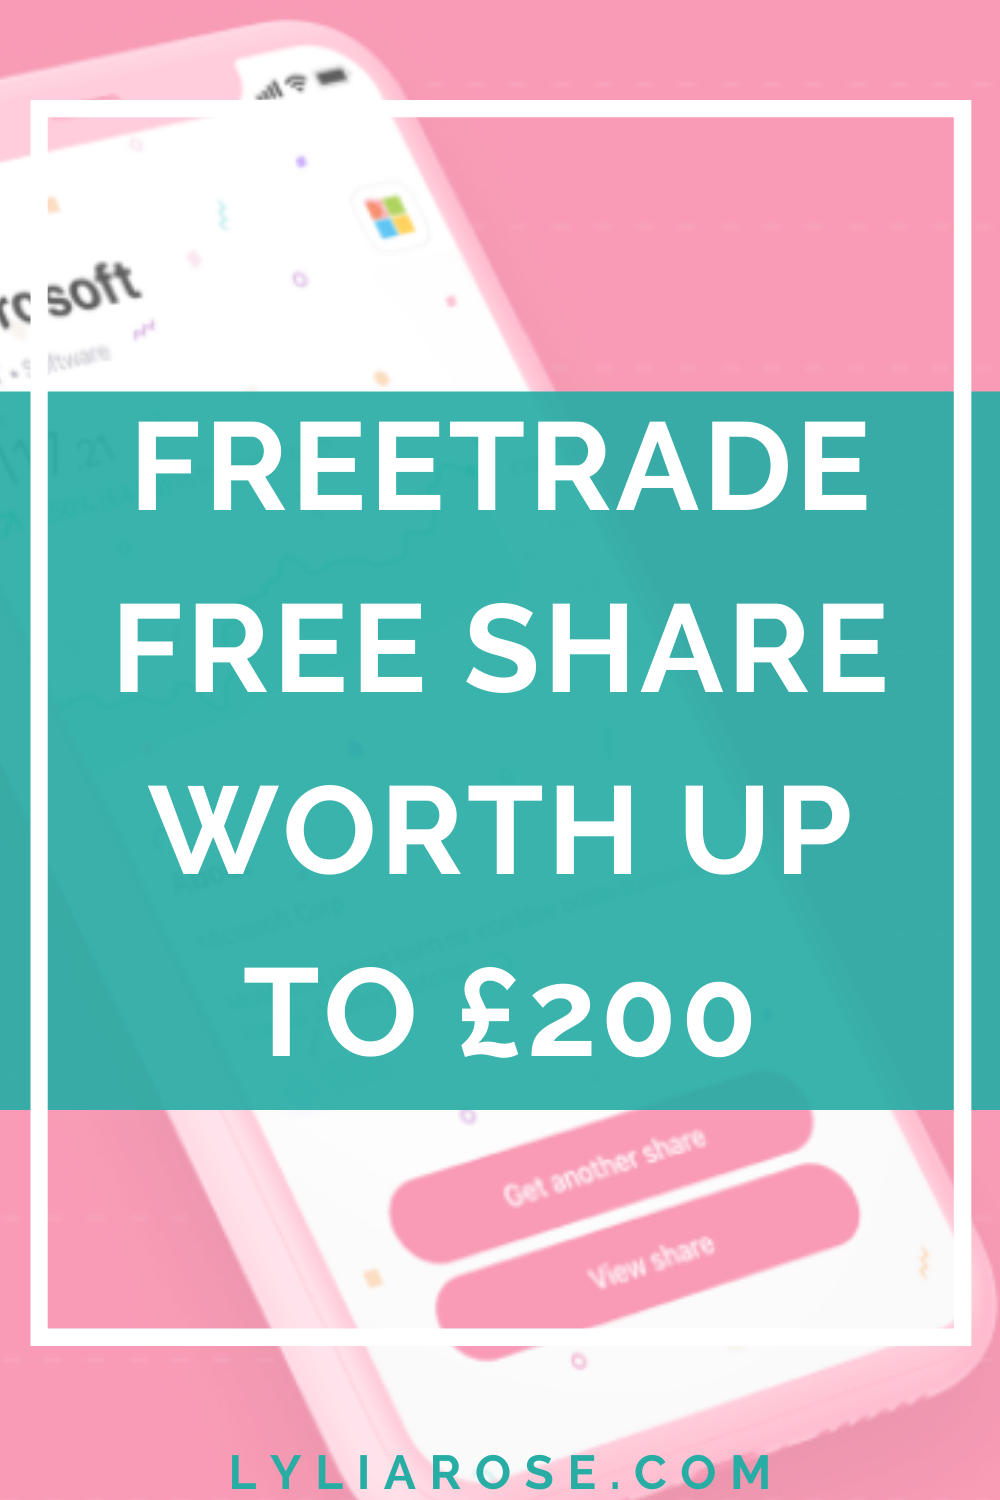 Freetrade free share worth up to £200